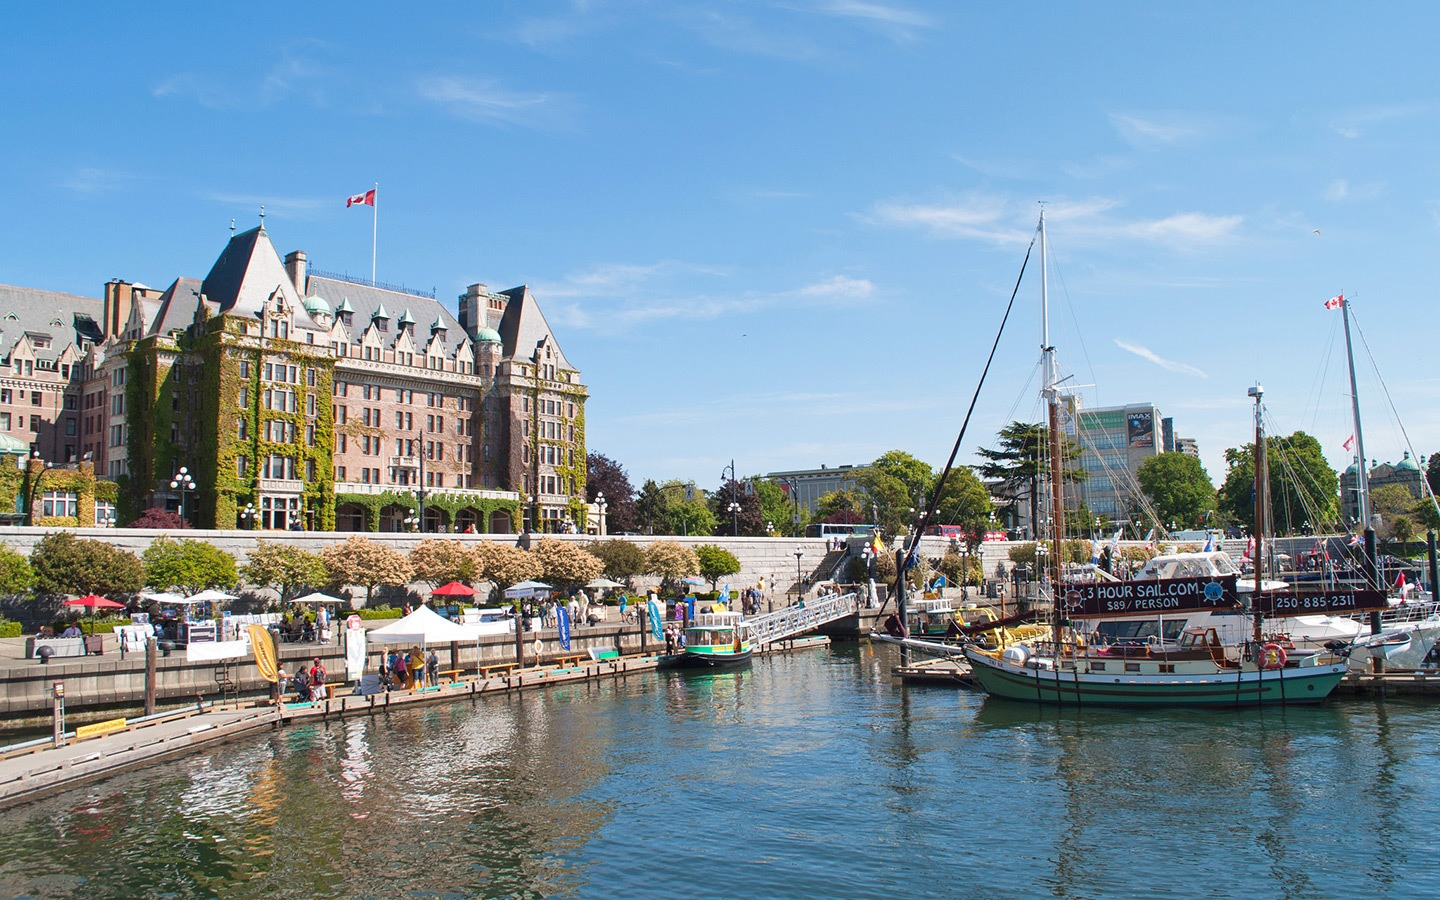 The harbour in Victoria, British Columbia